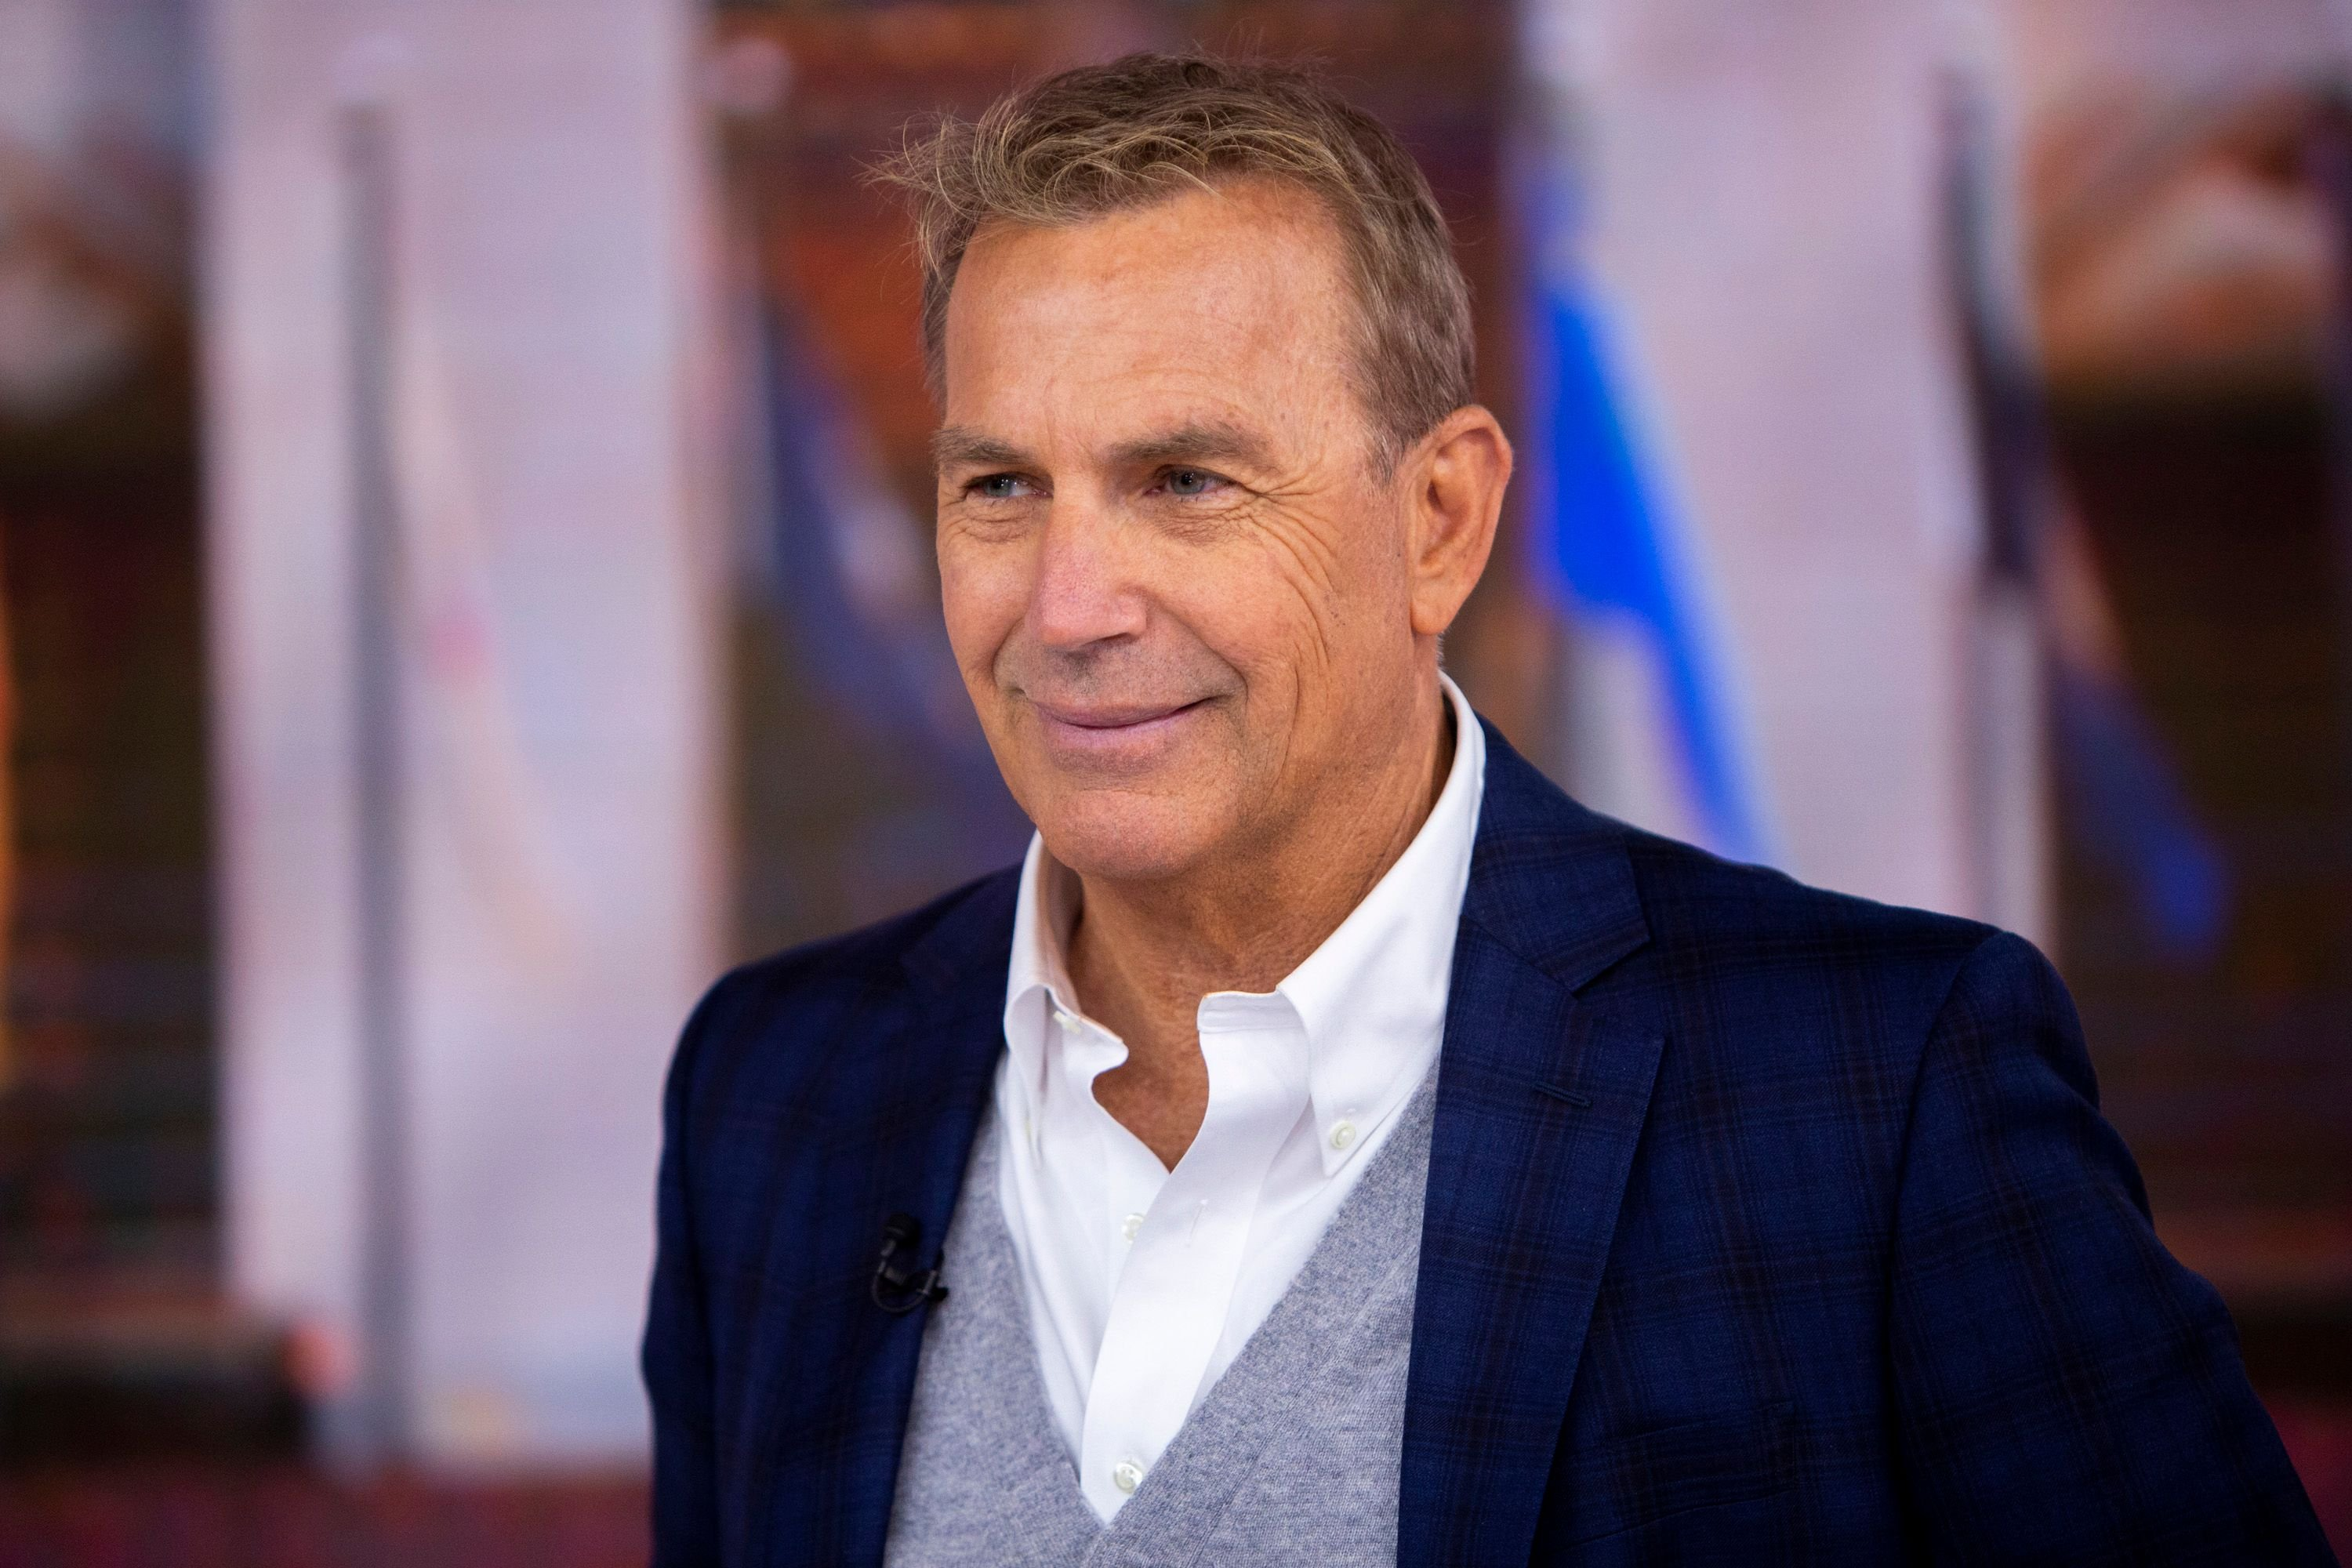 """Kevin Costner photographed while on the """"Today"""" show onMarch 28, 2019   Photo: Getty Images/Zach Pagano/NBCU Photo Bank/NBCUniversal"""